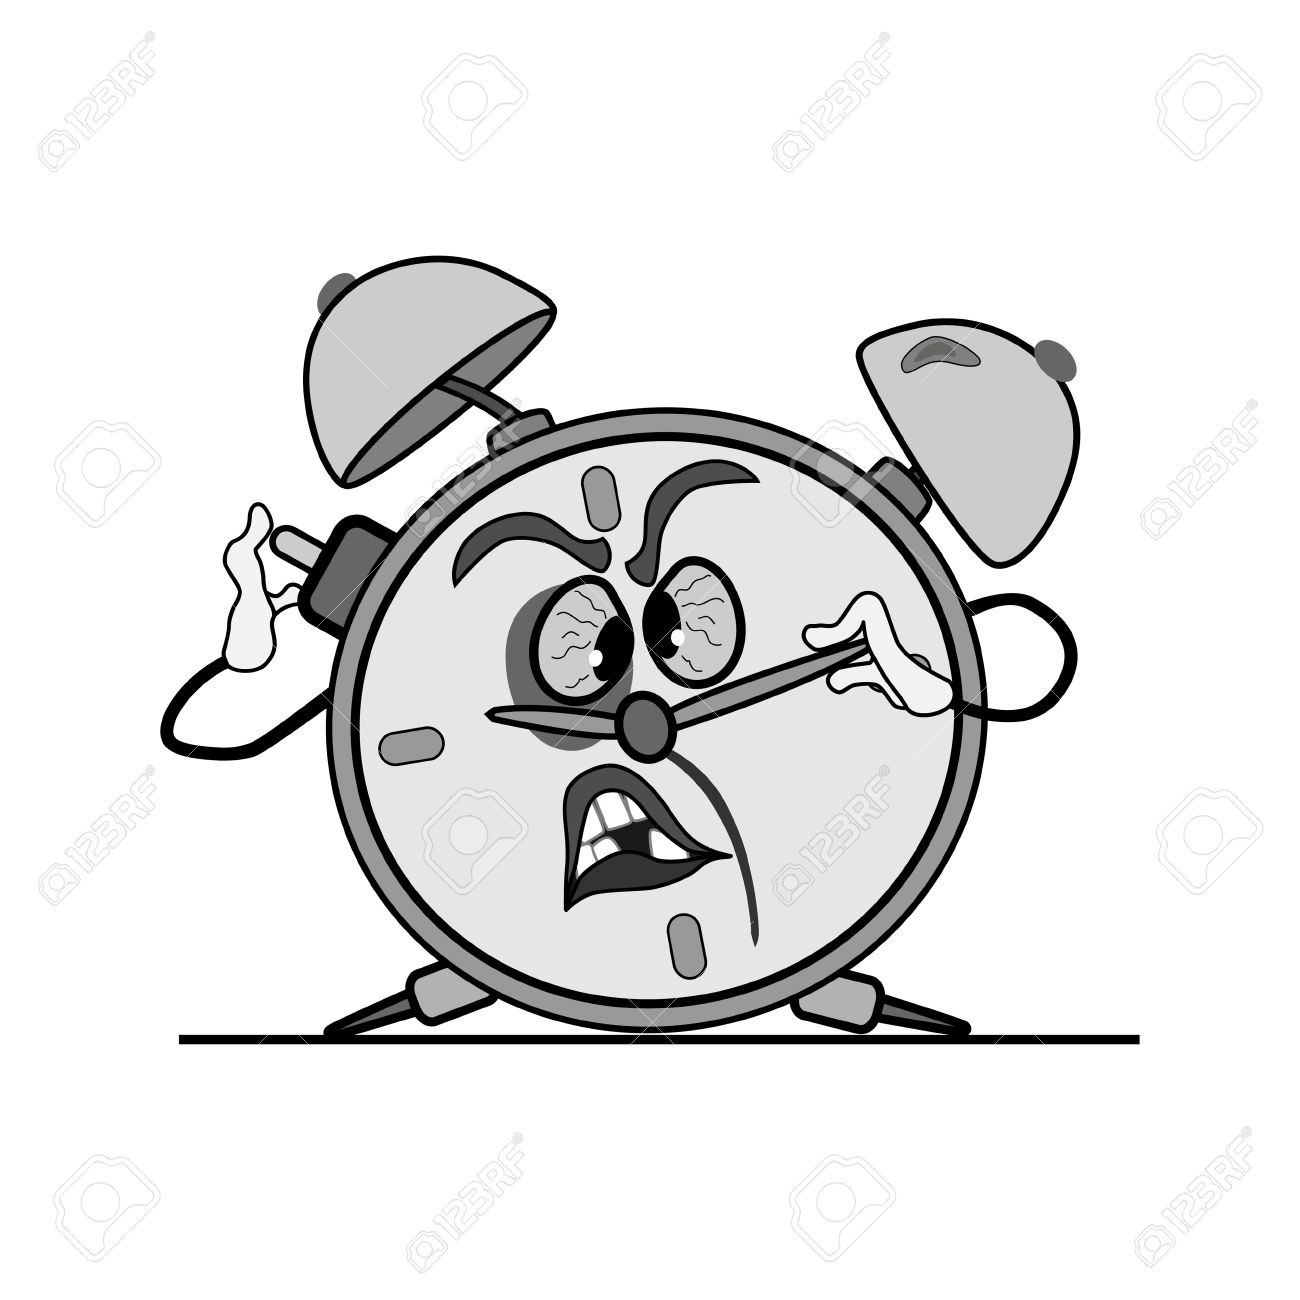 battered alarm clock is on crooked legs. trying to push the button. Stock Vector - 16429543